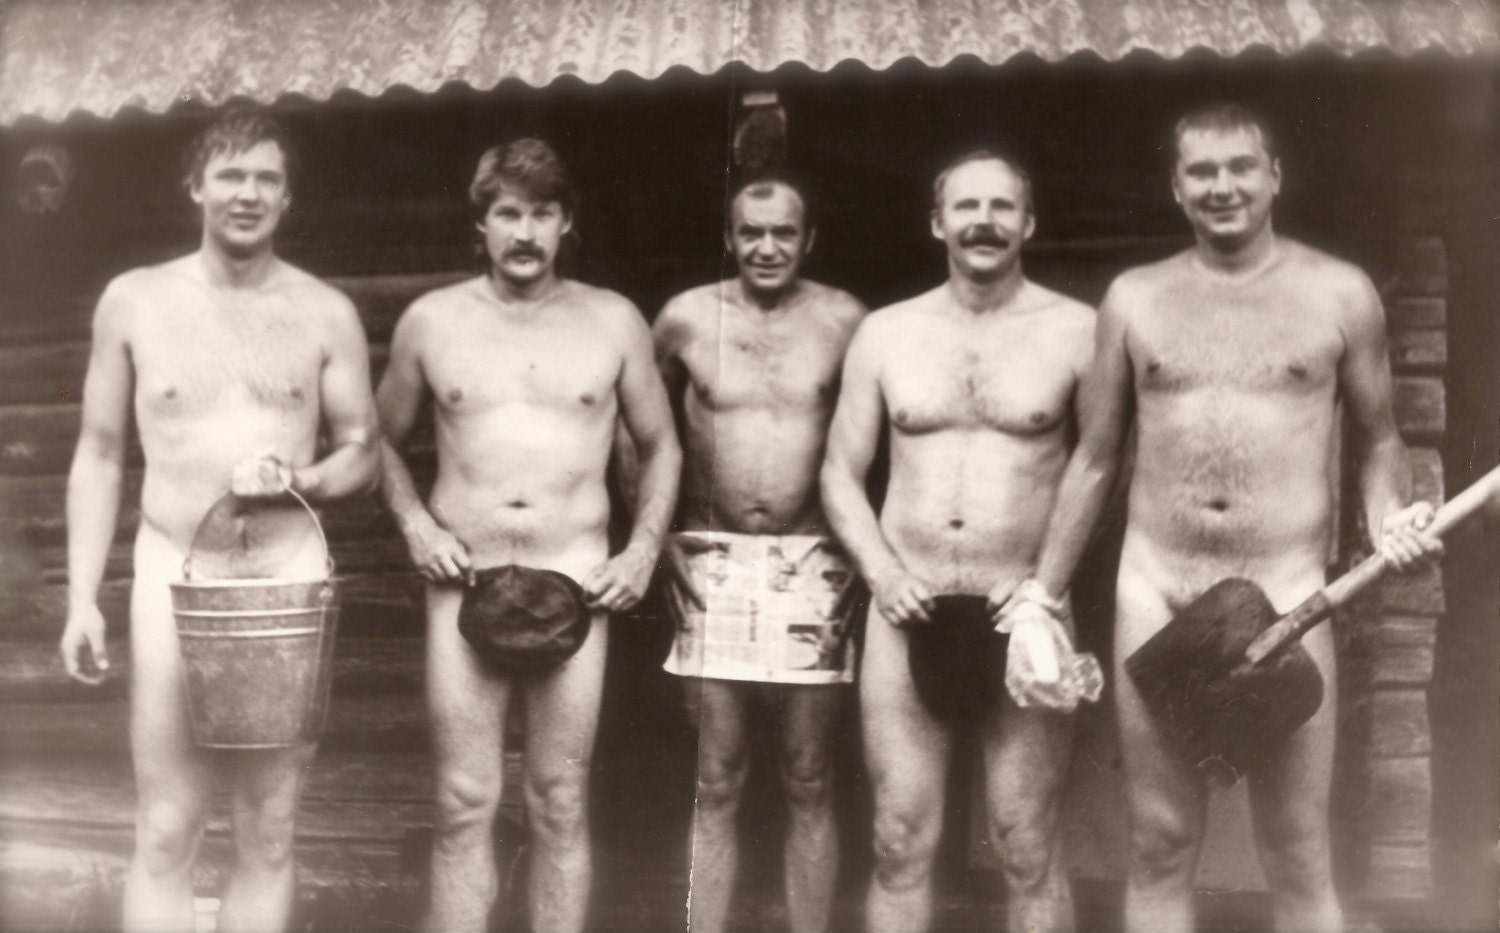 Ussr Nude Dating 37